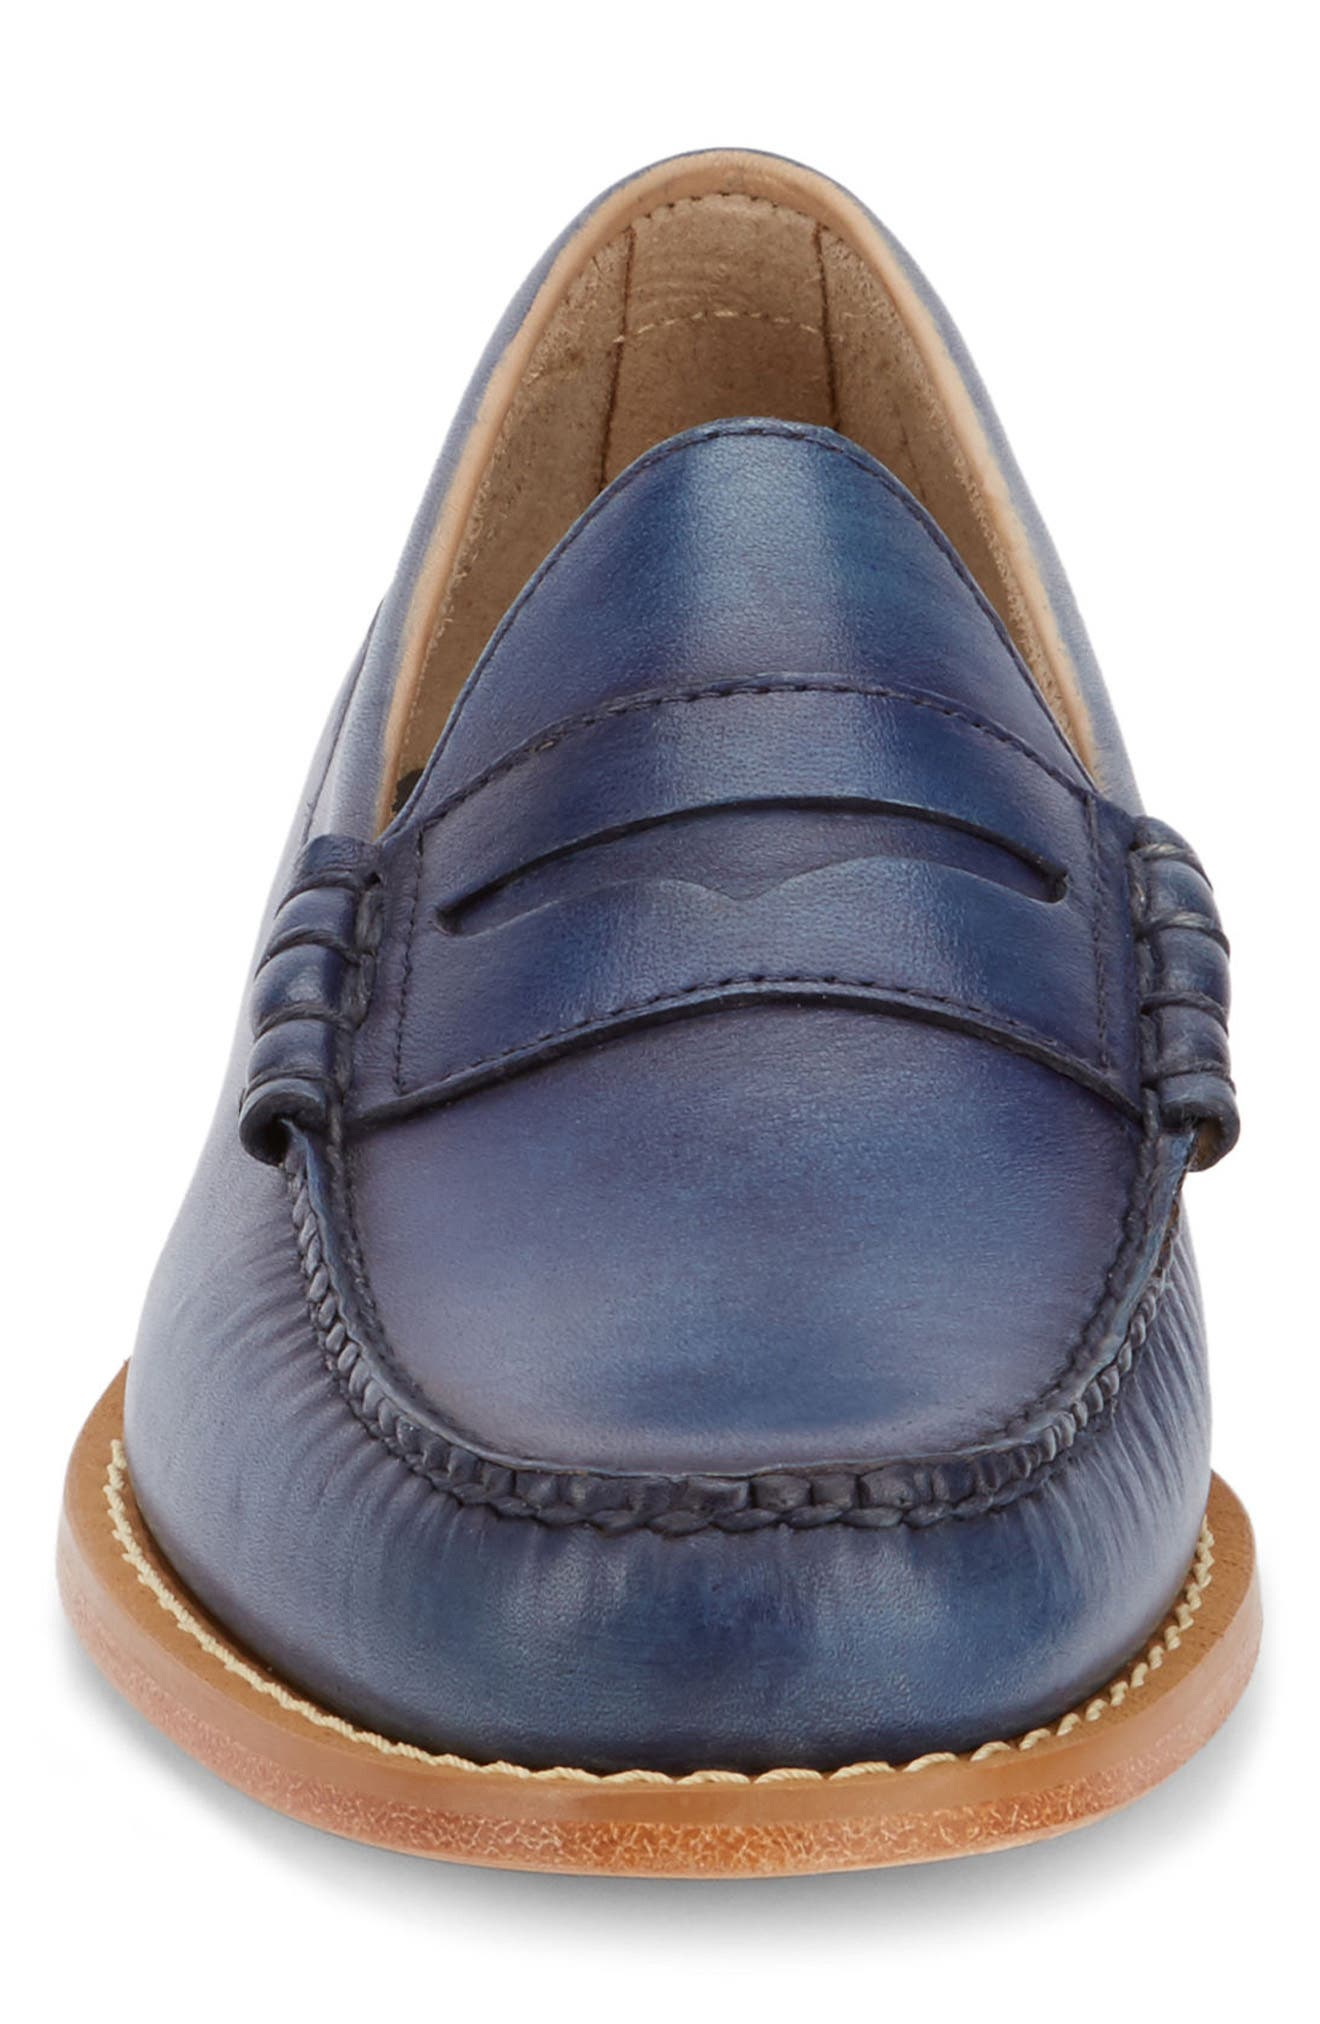 'Larson - Weejuns' Penny Loafer,                             Alternate thumbnail 4, color,                             NAVY/ NAVY LEATHER